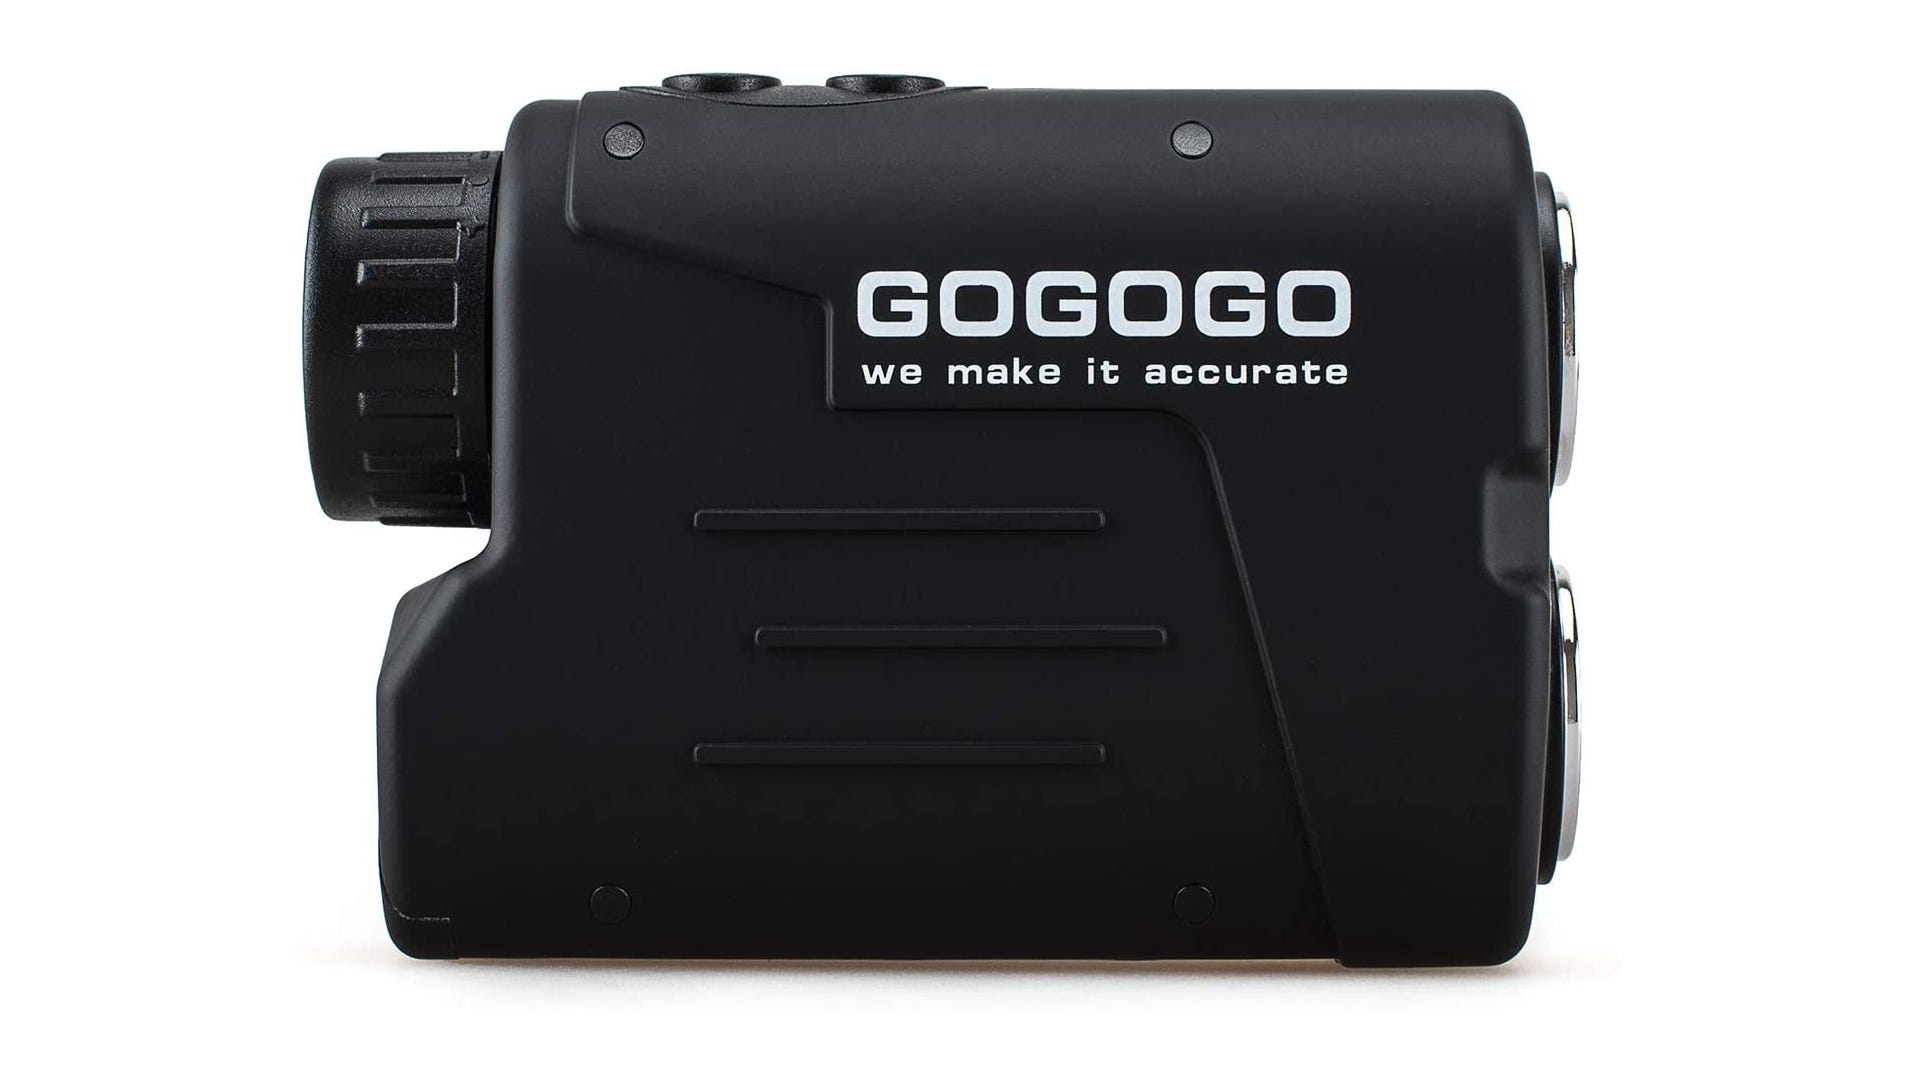 Black rangefinder with 650 yard range and speed mode for determining the speed of moving objects